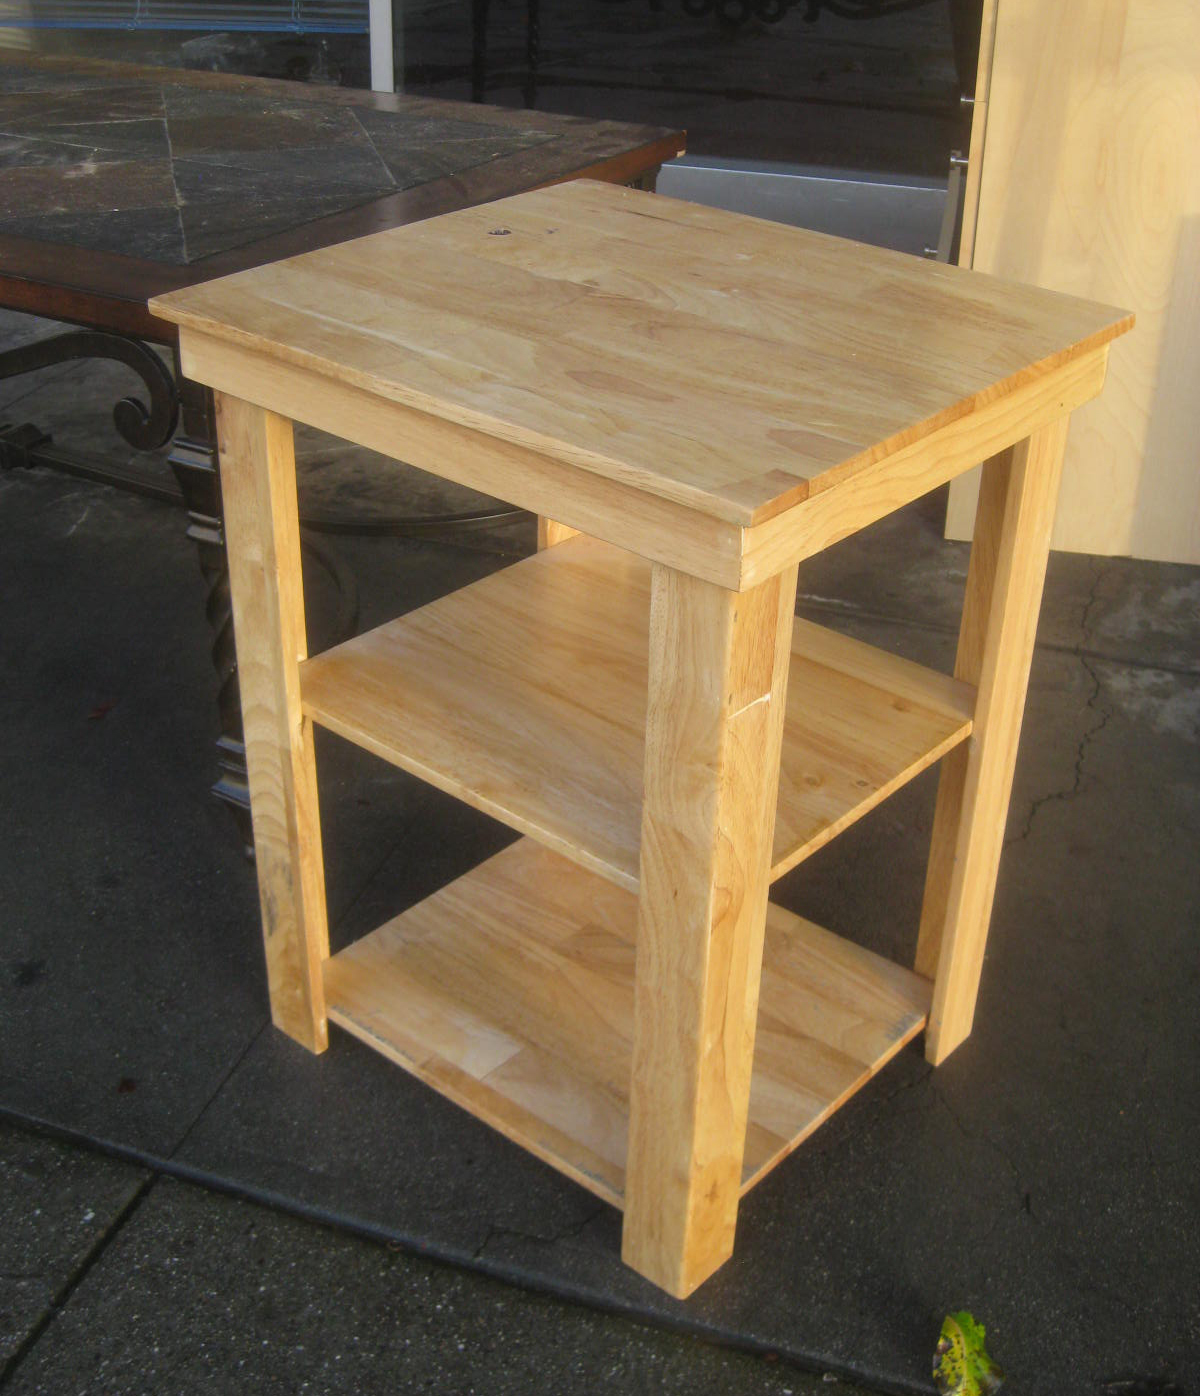 SOLD - Small Utility Table - $25